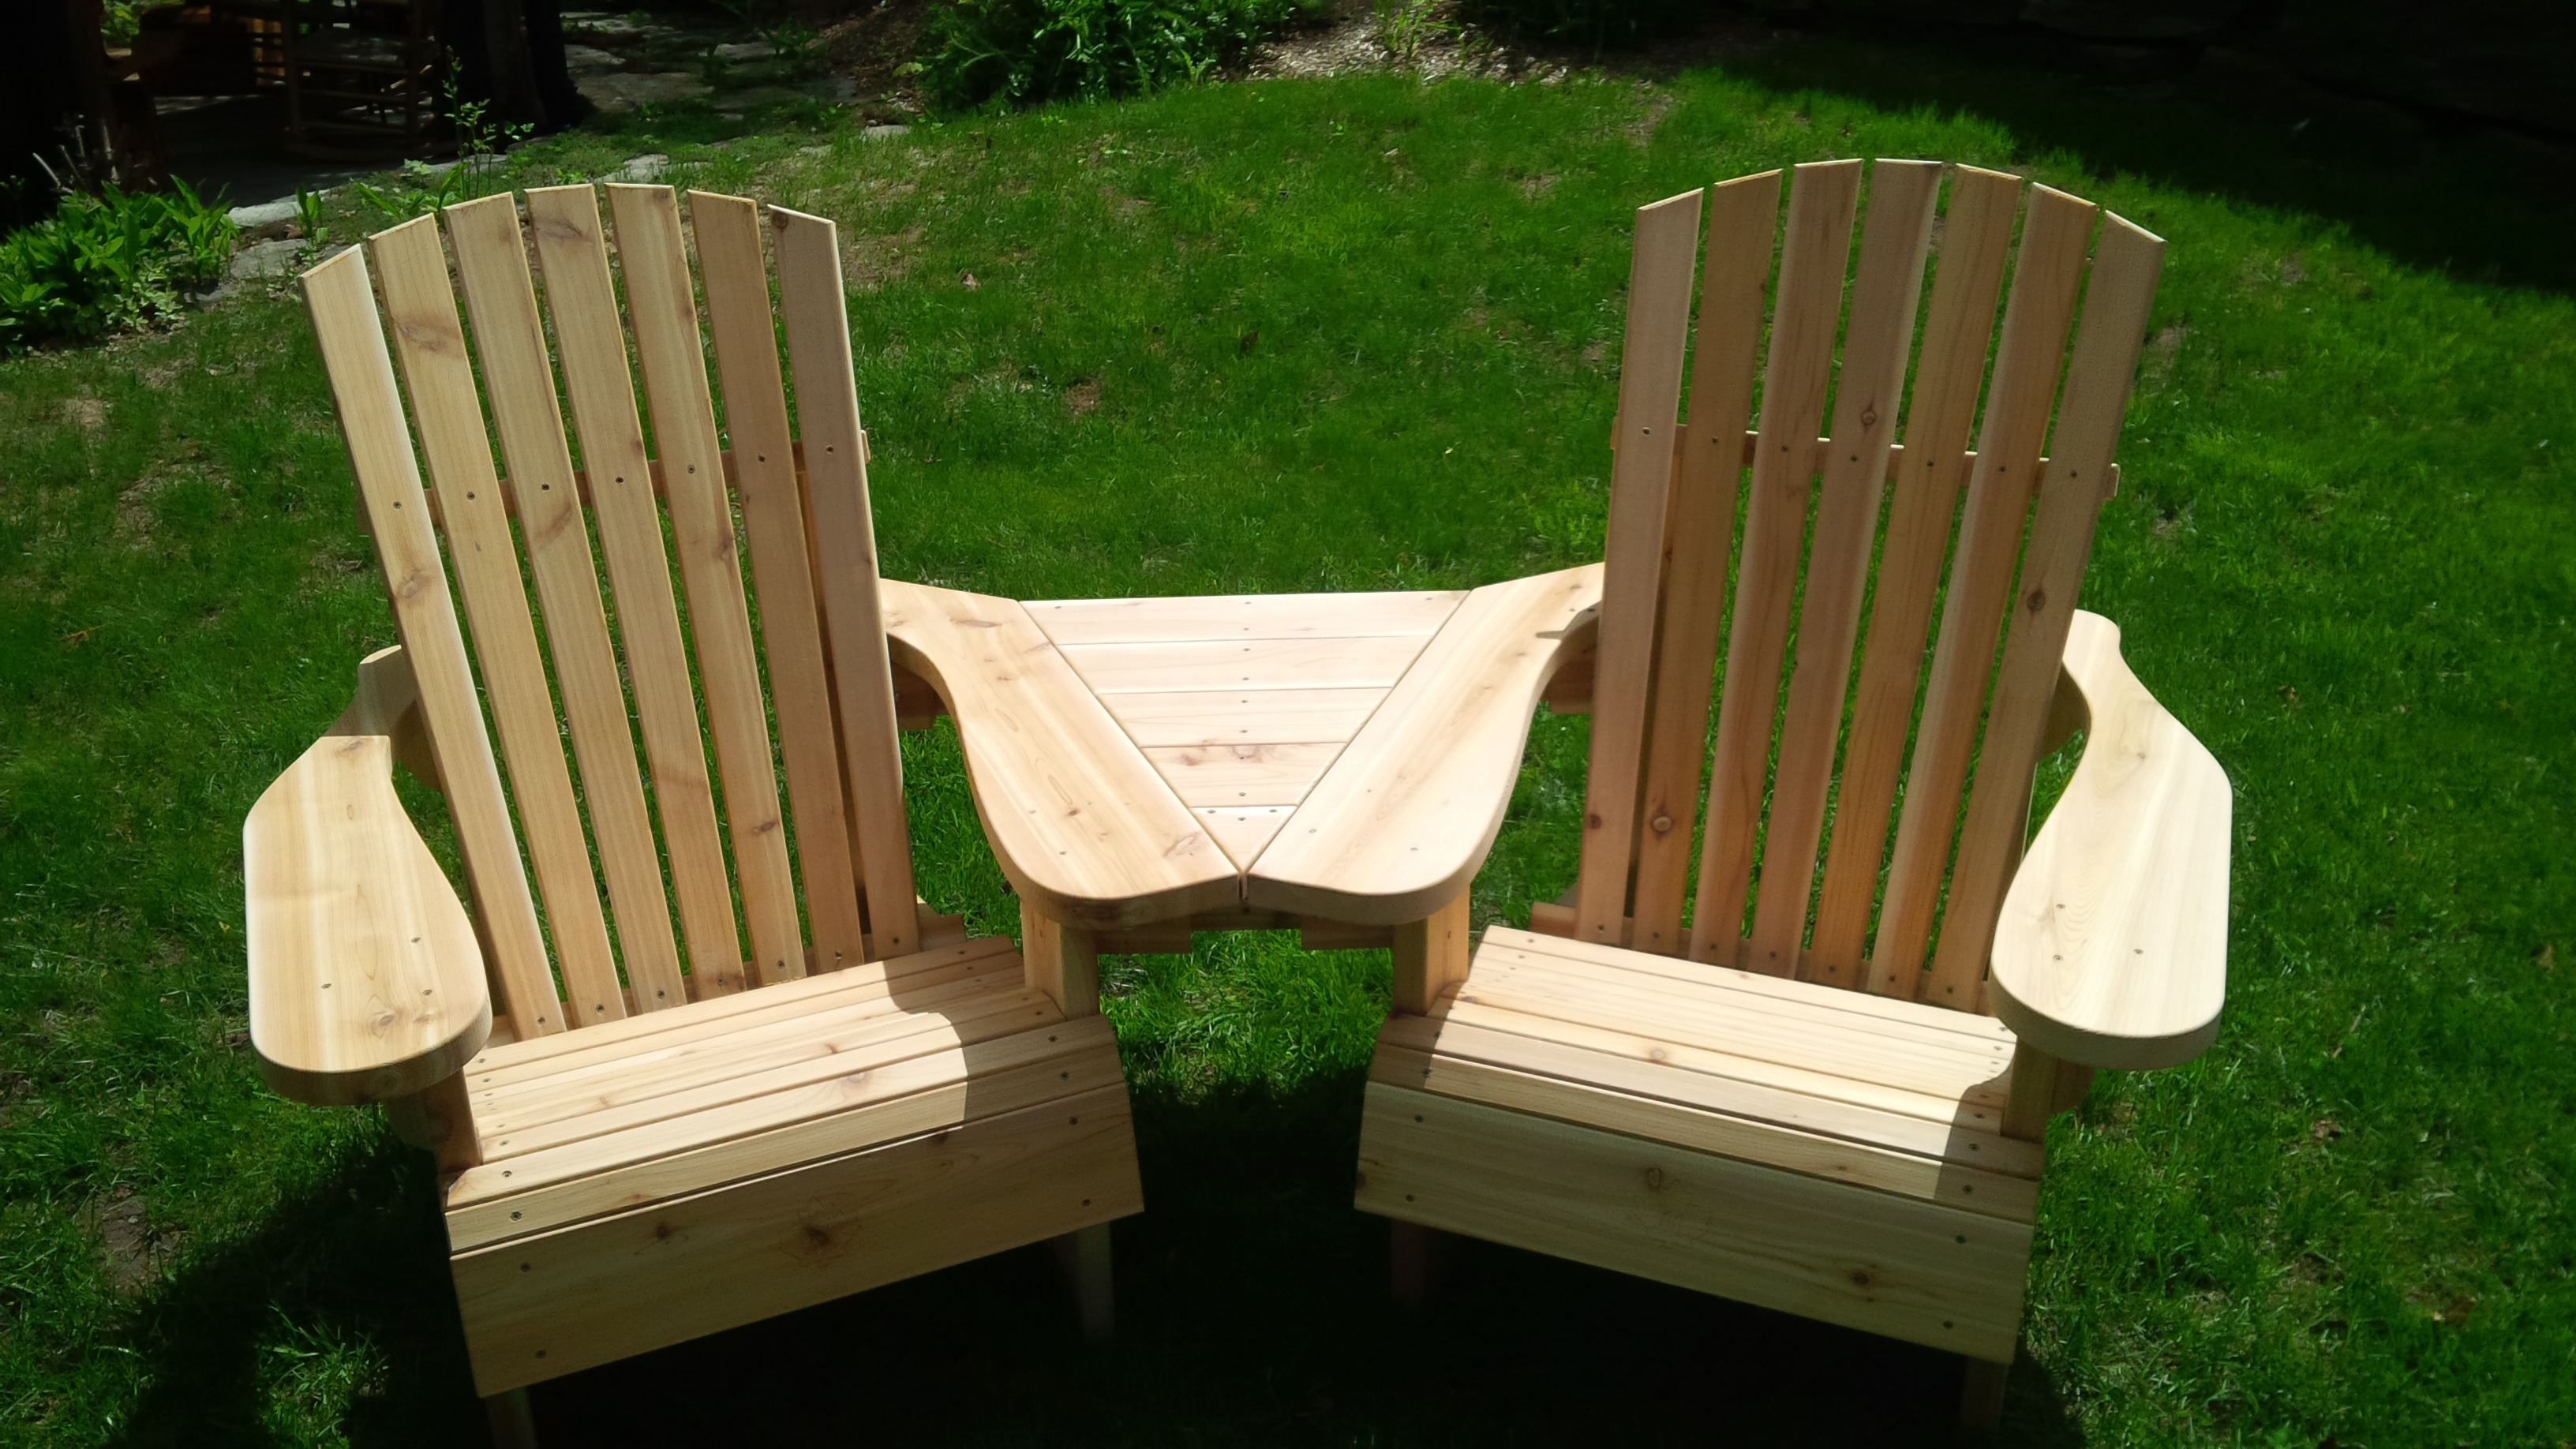 Angled Muskoka Chair/Table Combo